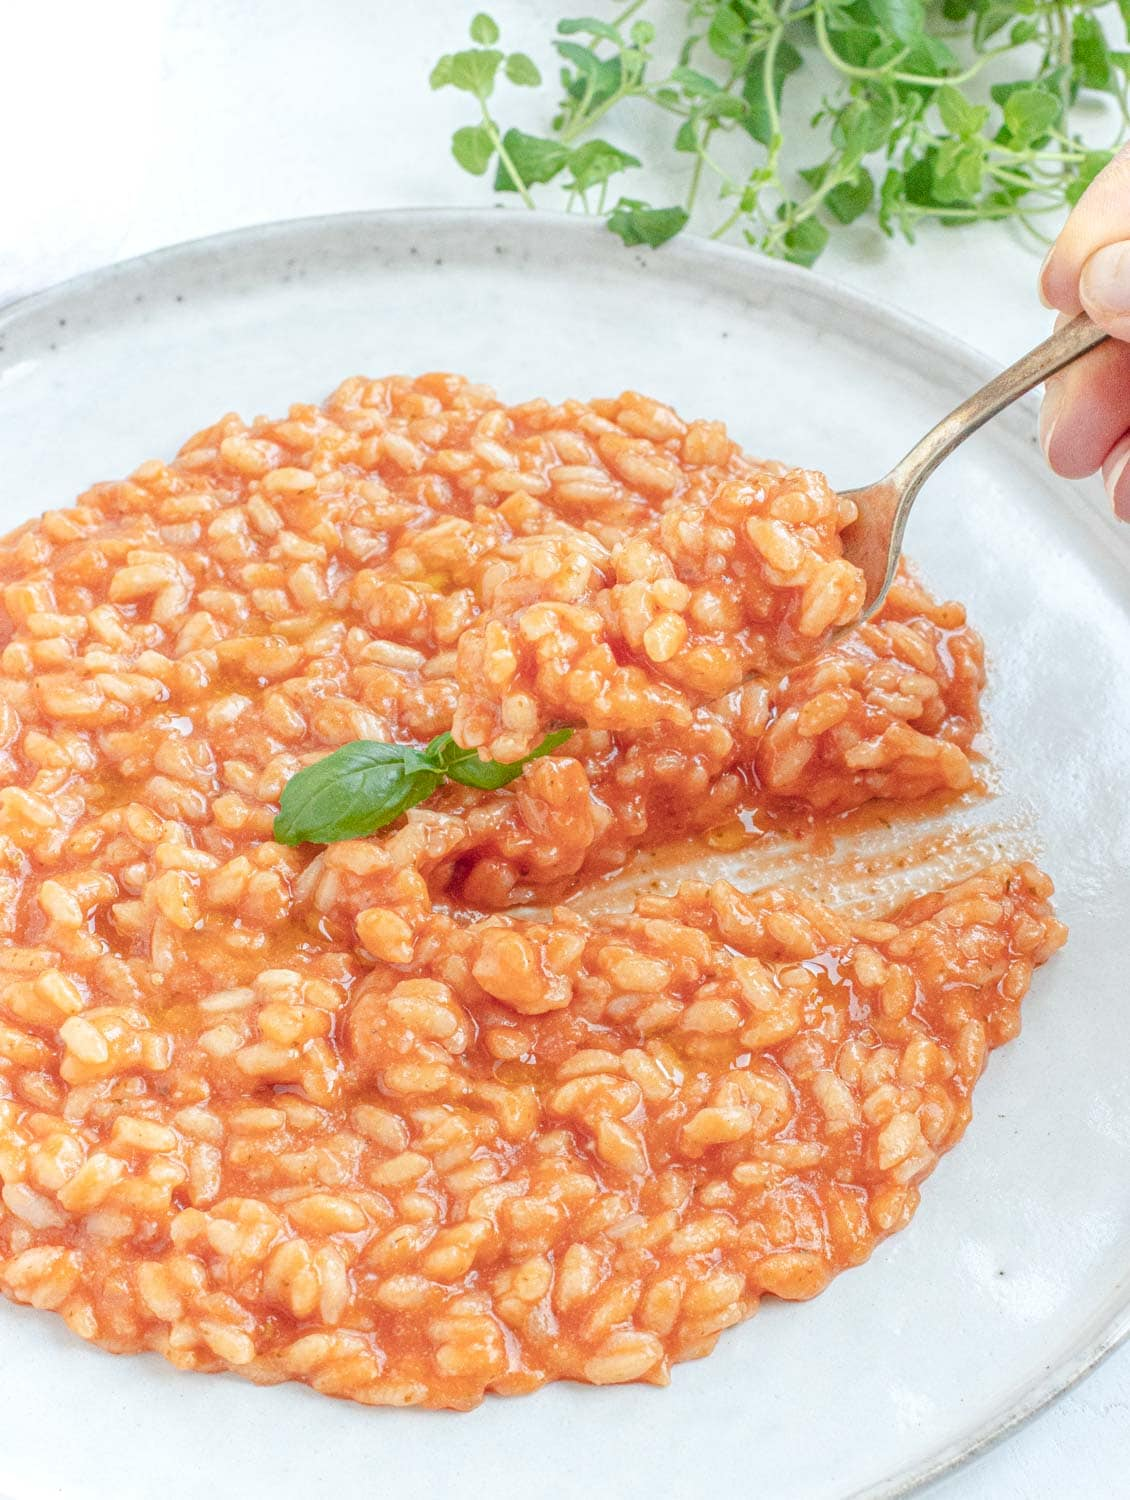 fork cutting through the creamy vegan tomato risotto